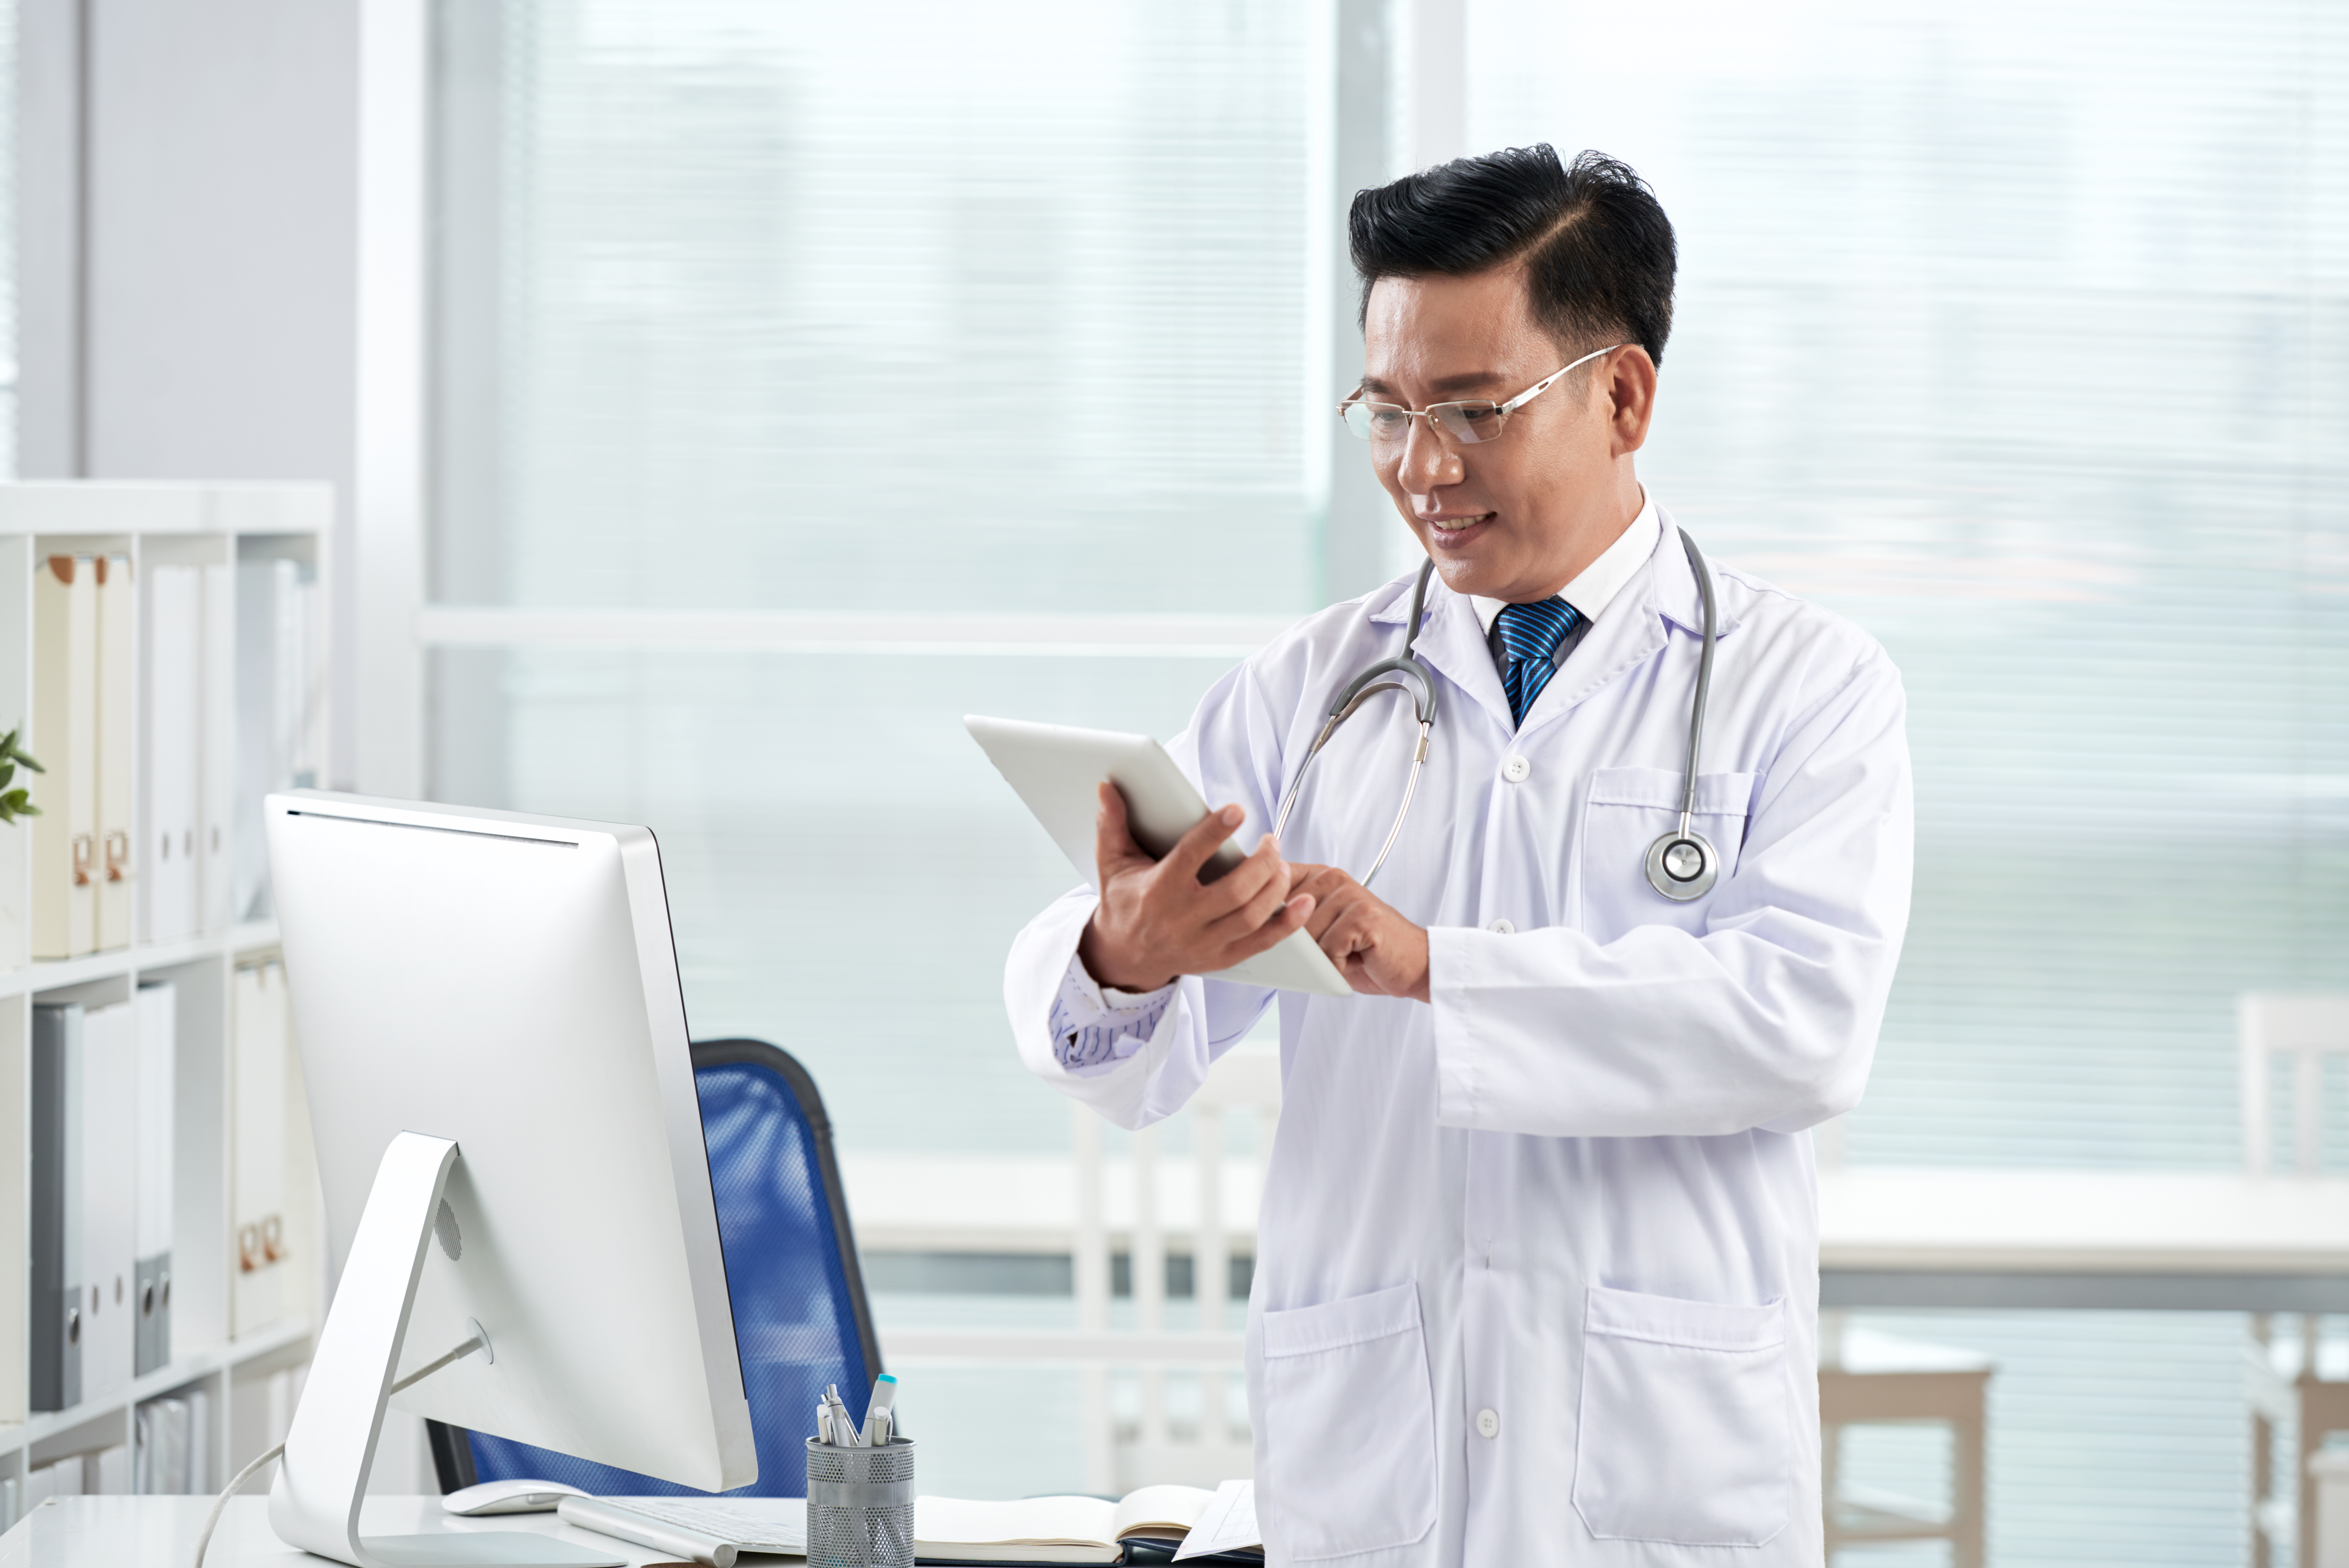 Allianz Global Corporate & Specialty and Allianz Care partners with MyDoc to introduce digital health services to Singapore-based customers